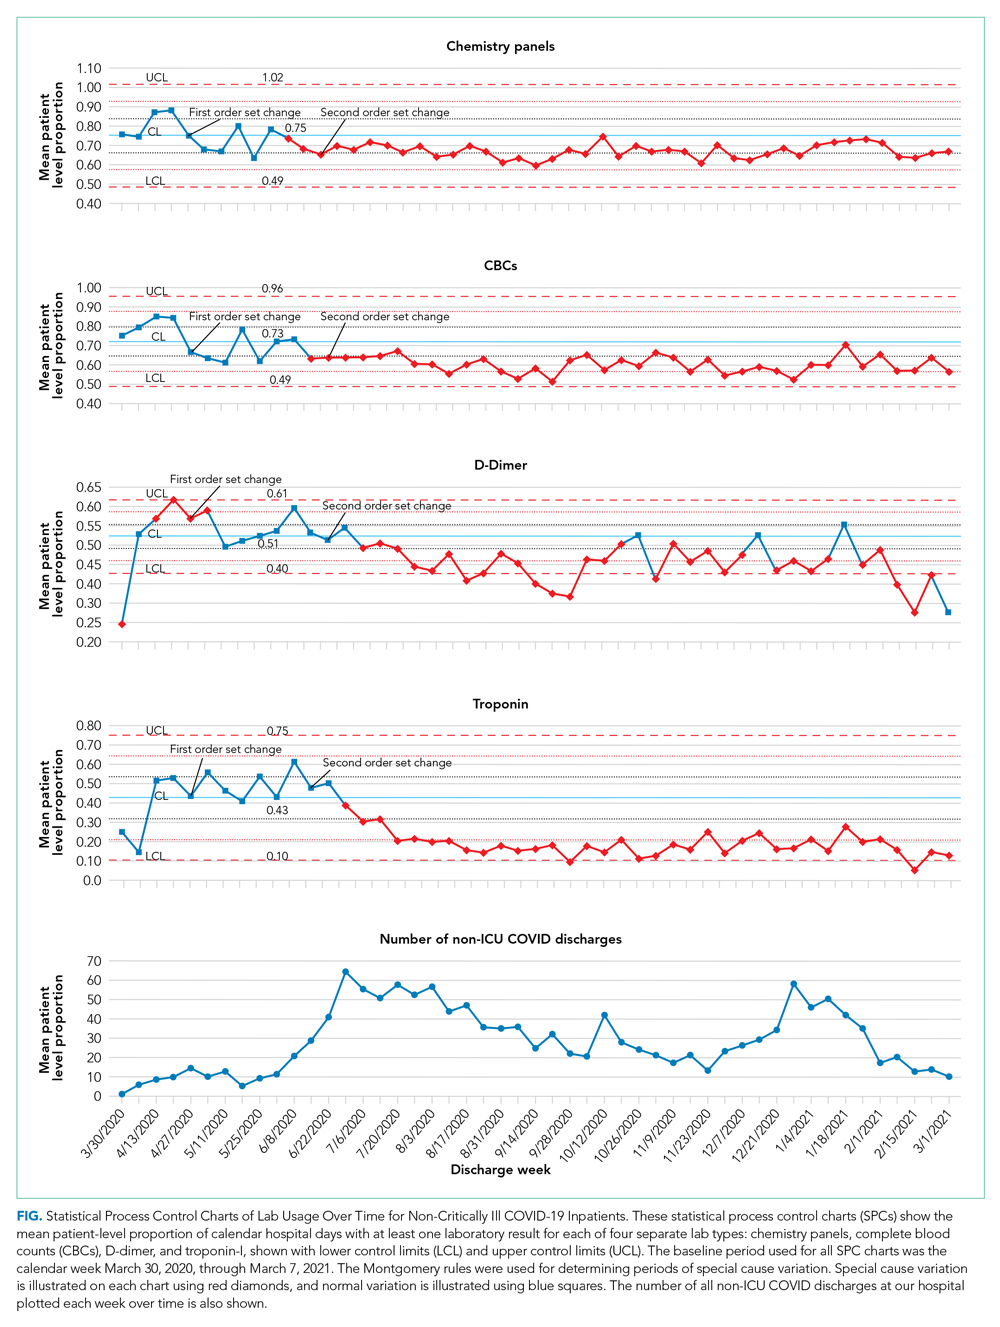 Statistical Process Control Charts of Lab Usage Over Time for Non-Critically Ill COVID-19 Inpatients